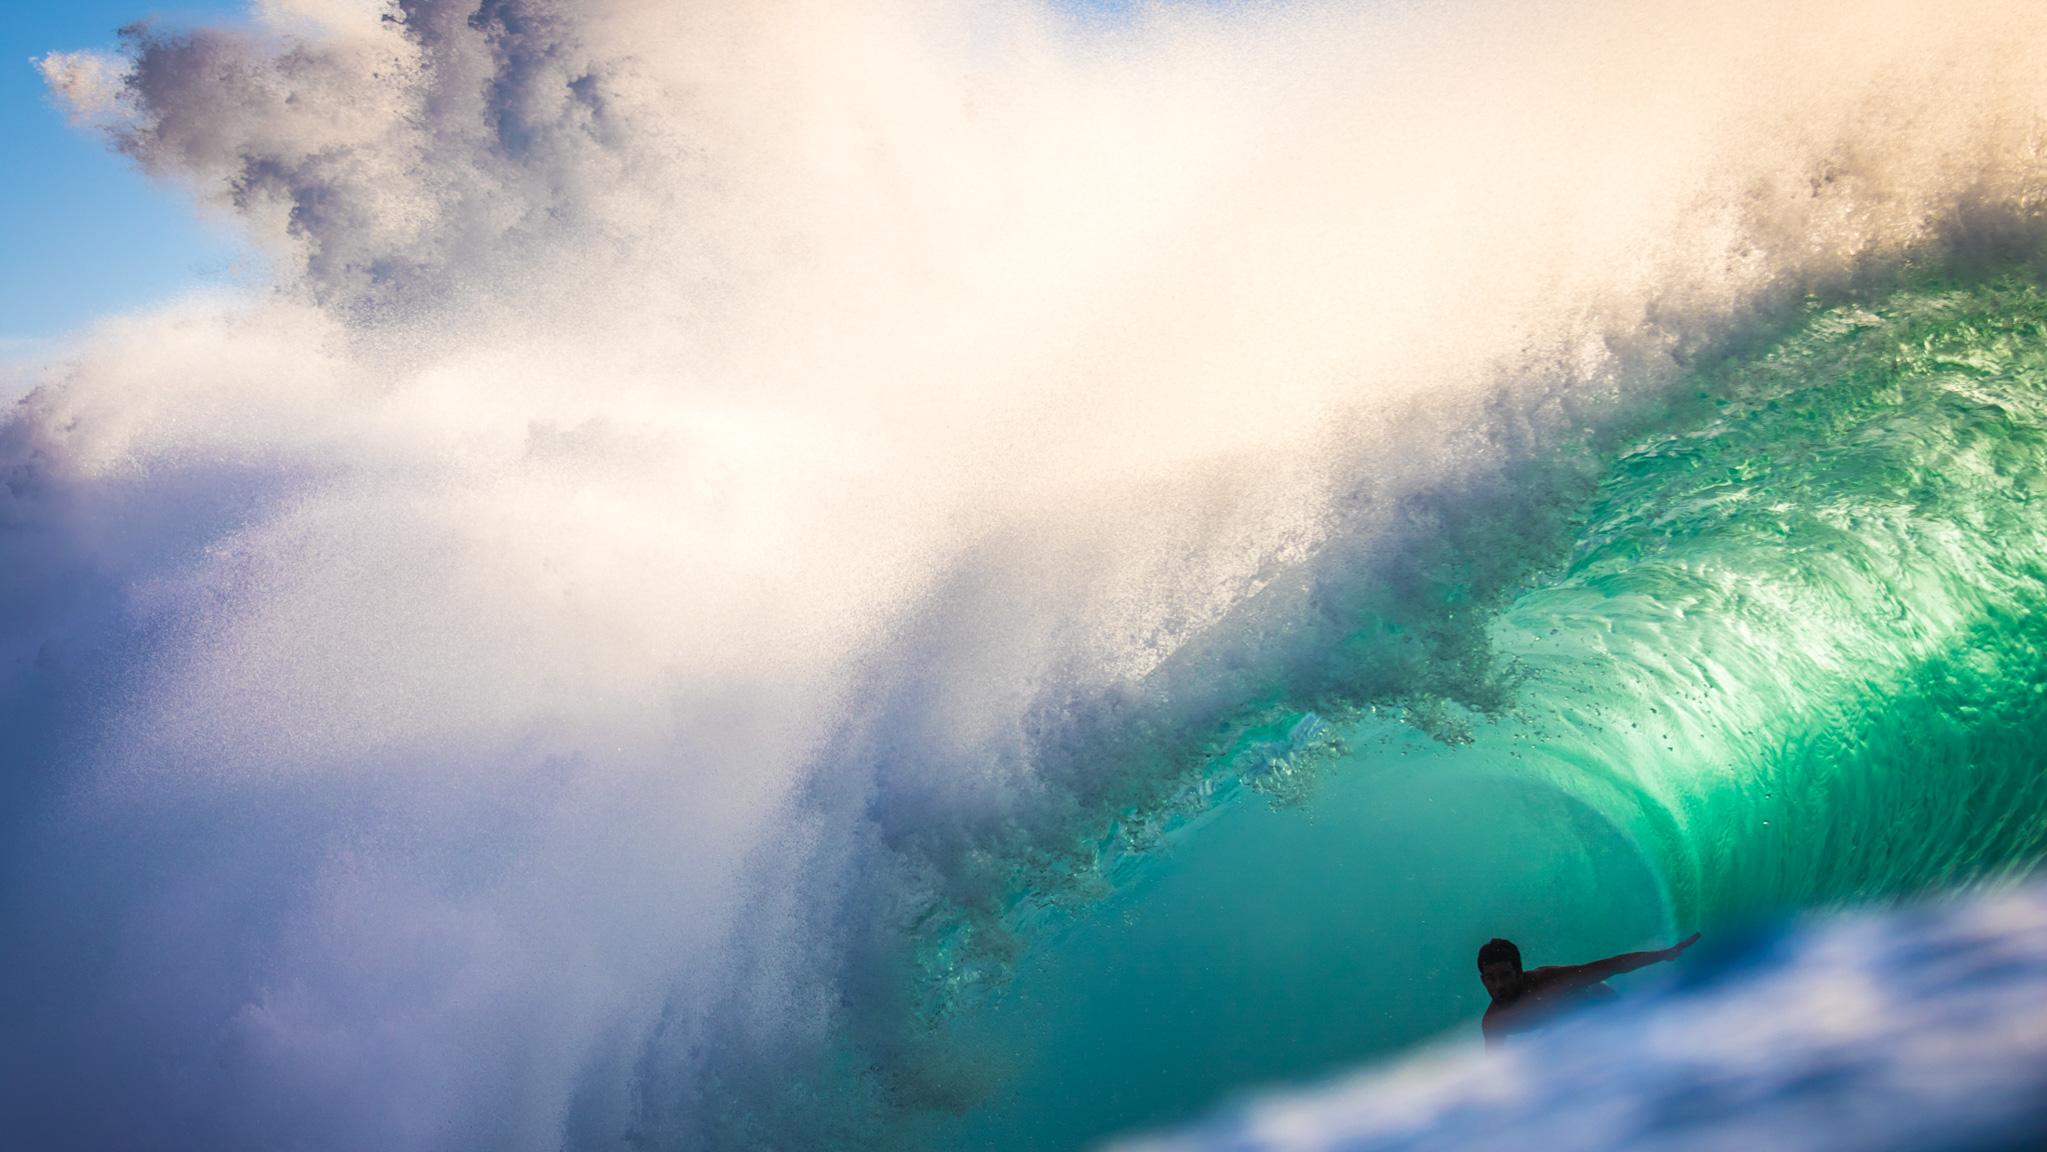 Mason Ho, Pipeline, Hawaii